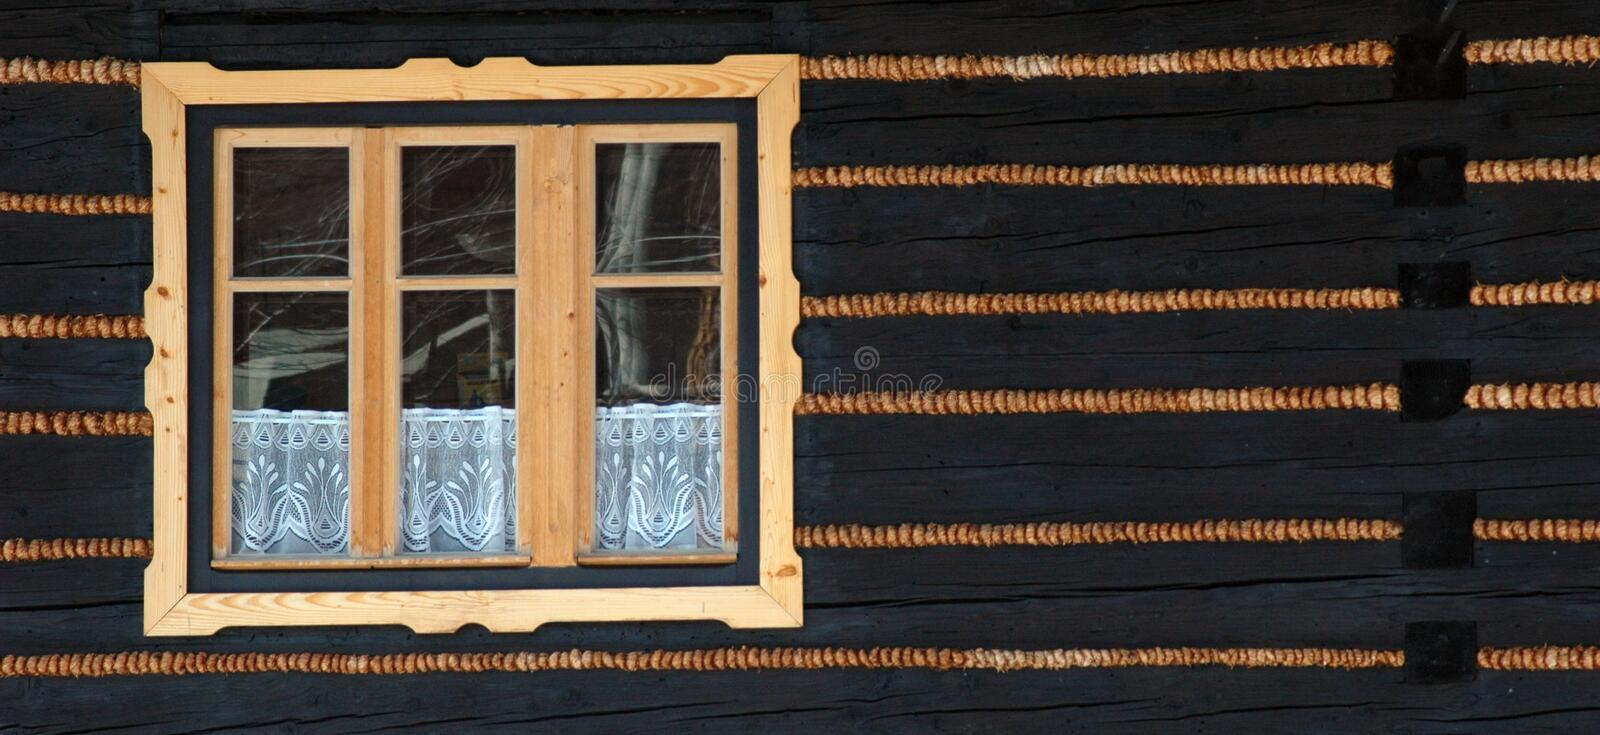 Download Wooden window #01 stock photo. Image of window, pane, shades - 4901006